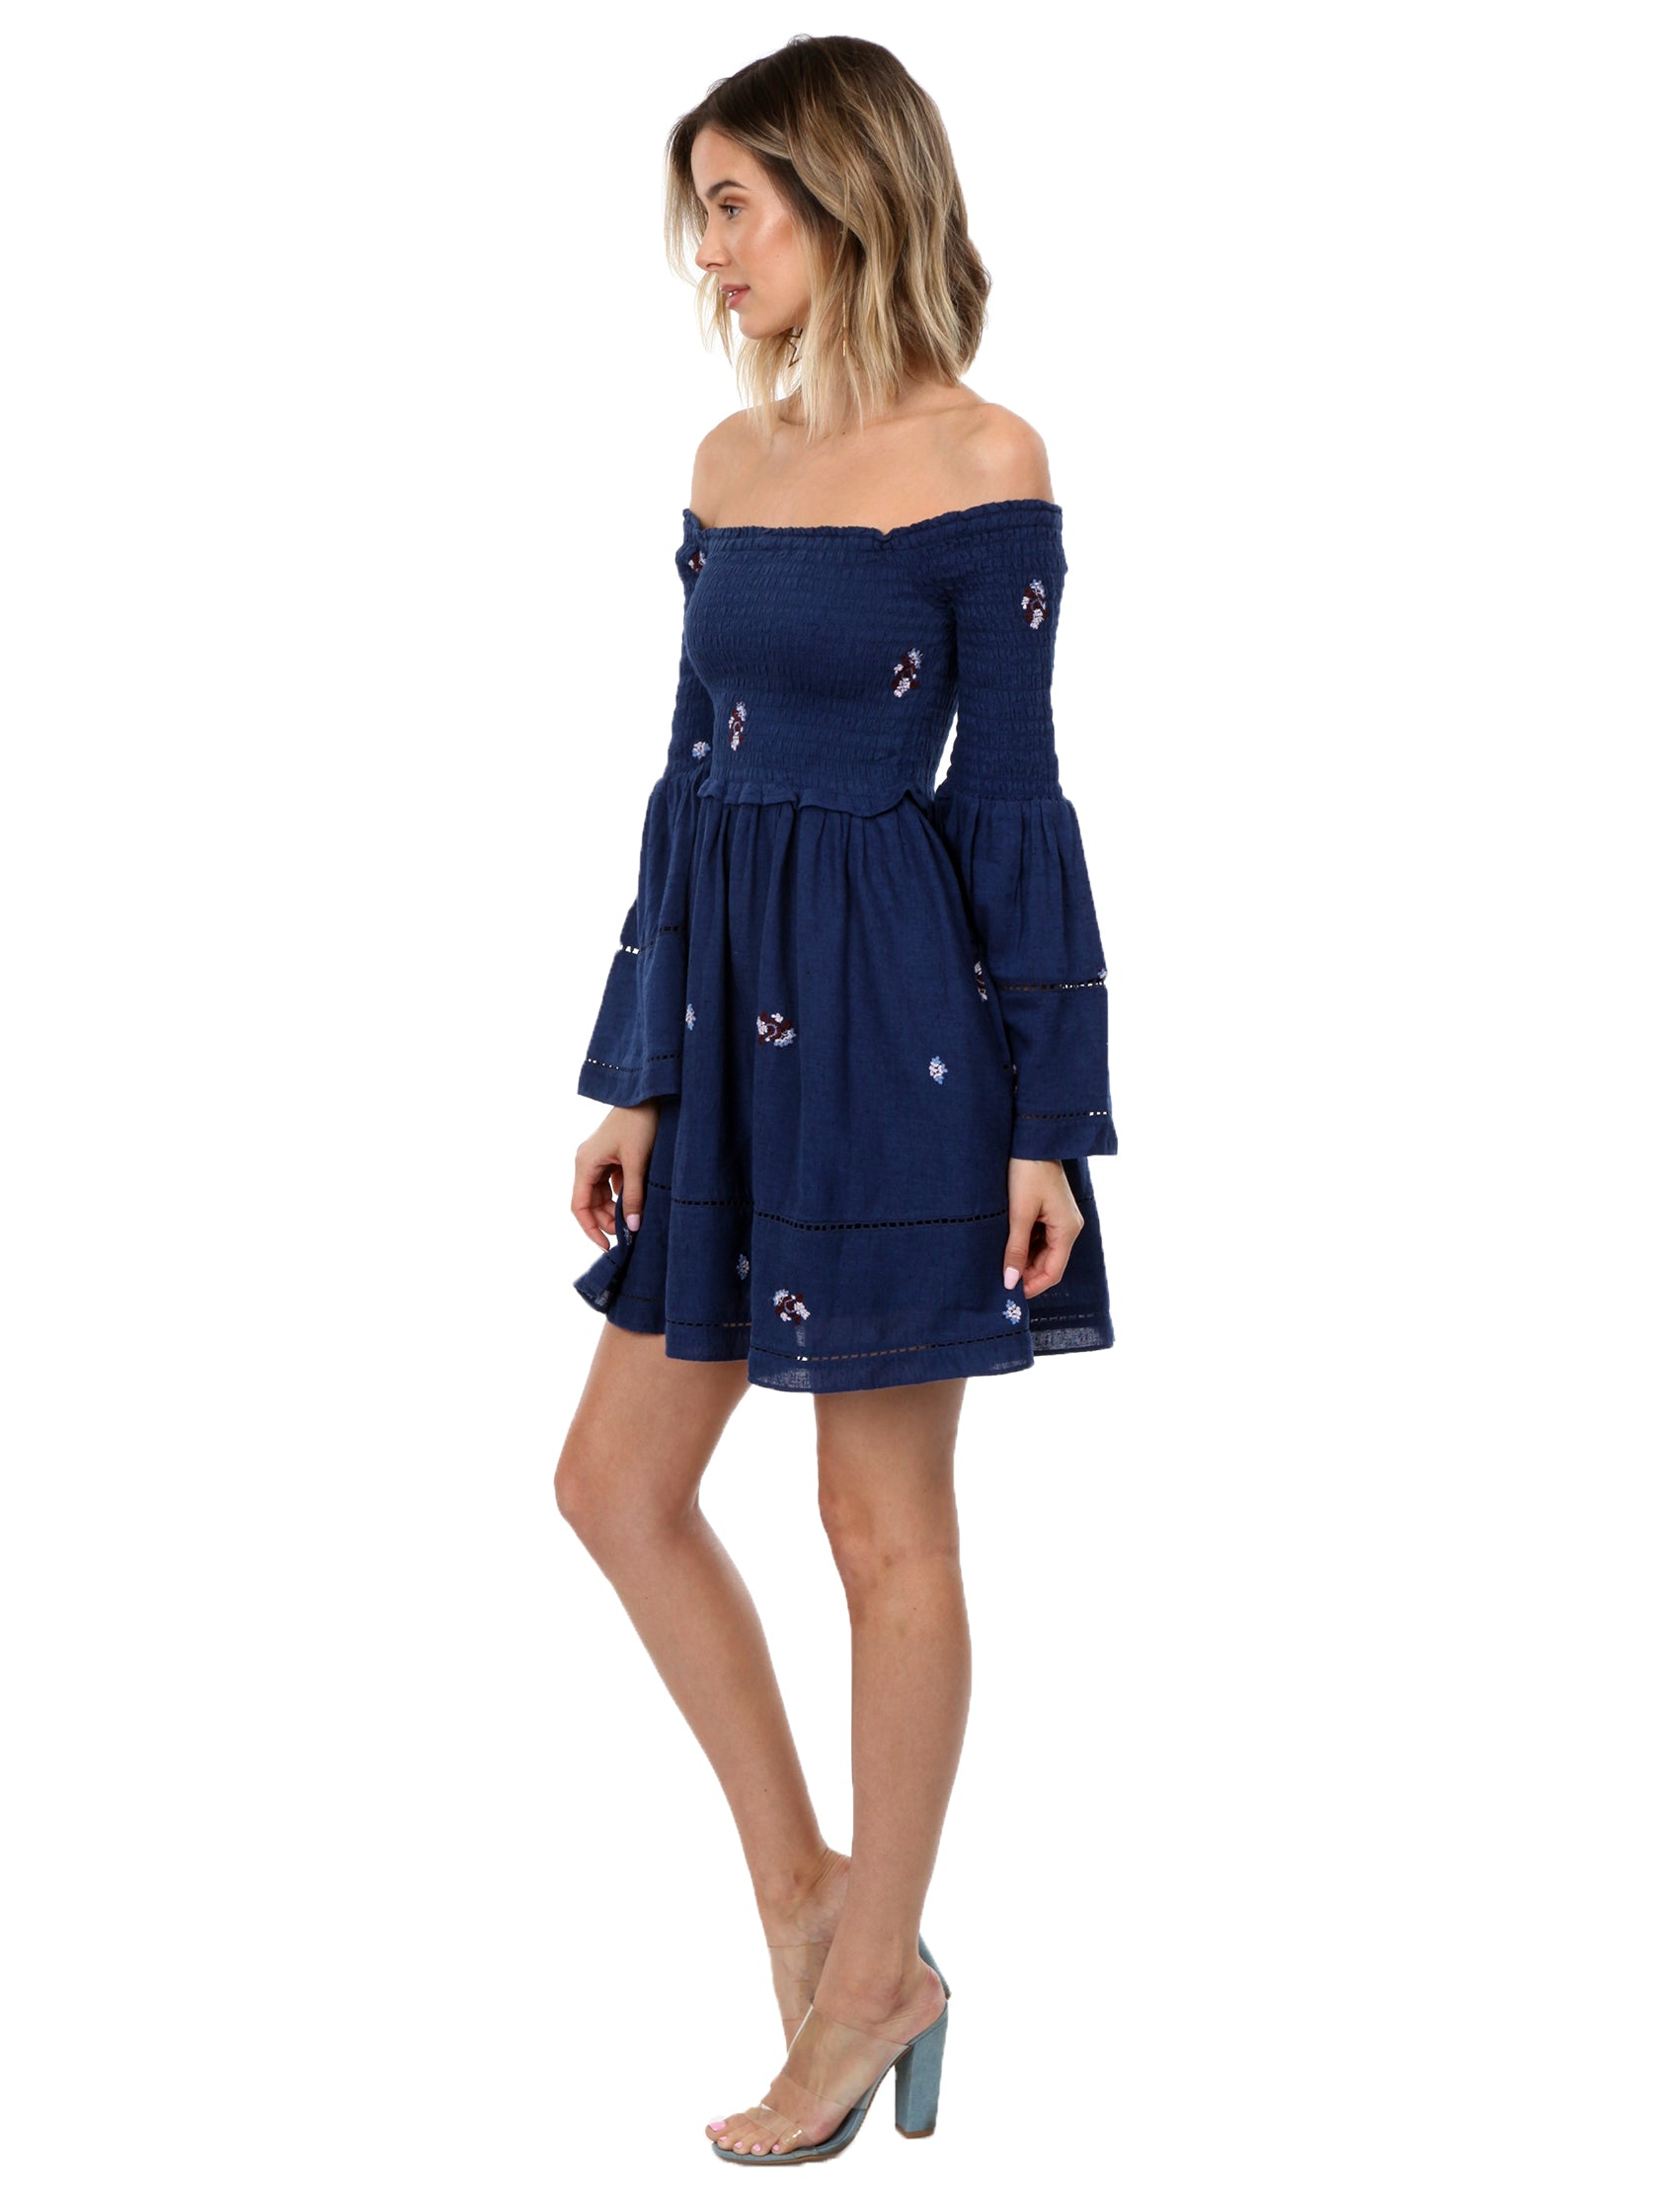 Woman wearing a dress rental from Free People called Counting Daisies Embroidered Off The Shoulder Dress